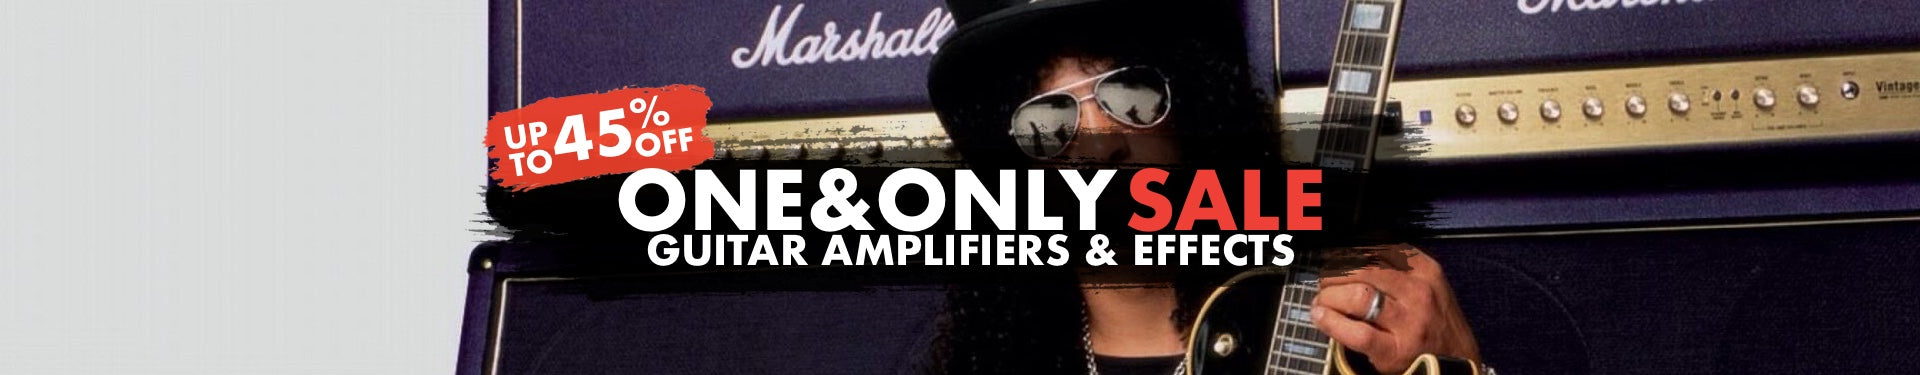 One & Only Amplifiers & Effects Sale